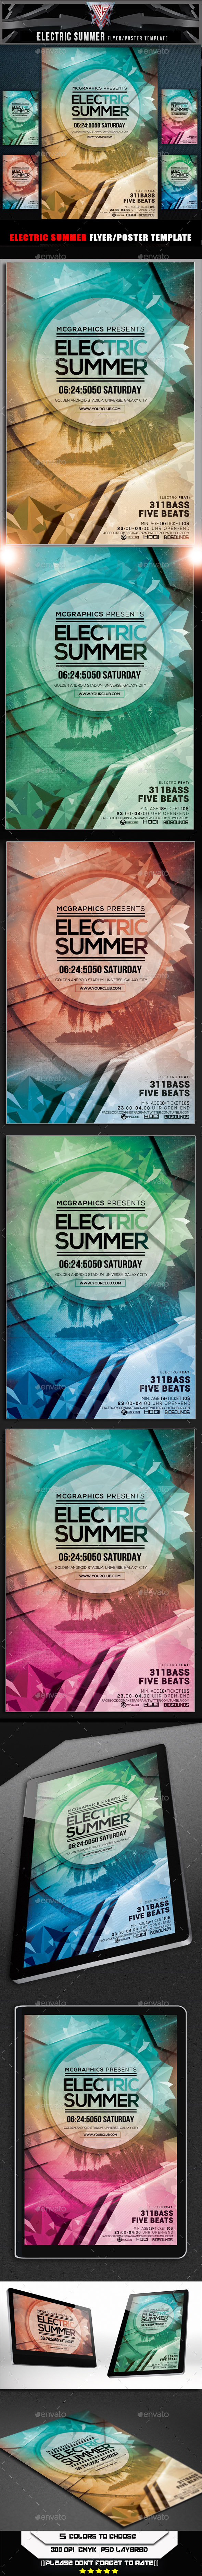 Electric Summer Flyer Template - Flyers Print Templates